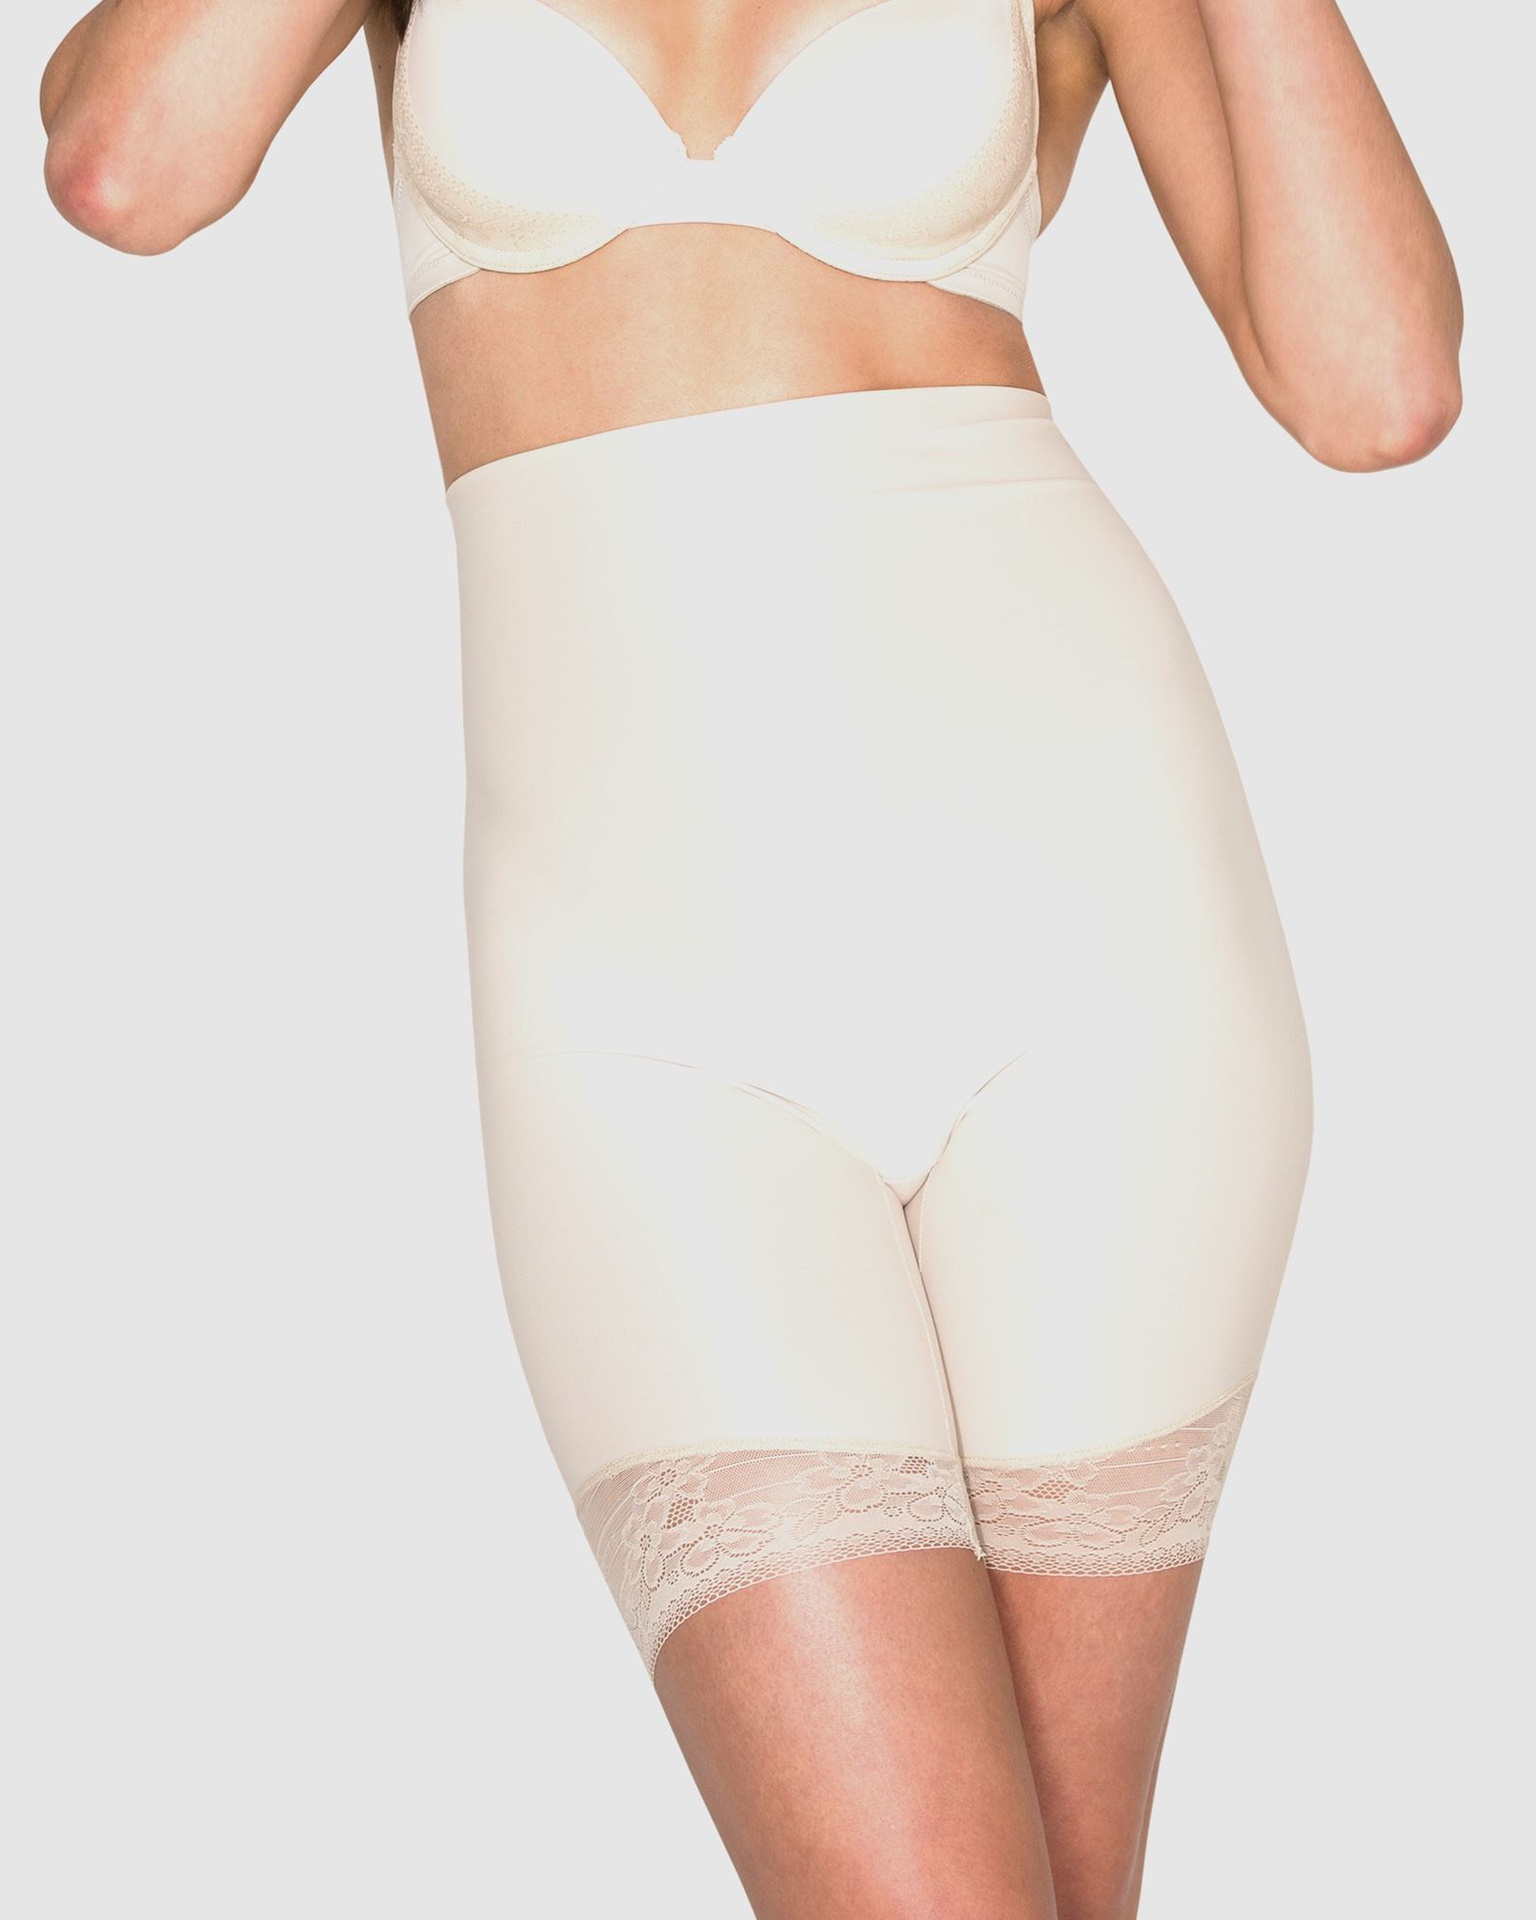 ESSENSUAL FIRM CONTROL HIGH WAIST THIGH SHAPERS - Cherry Red